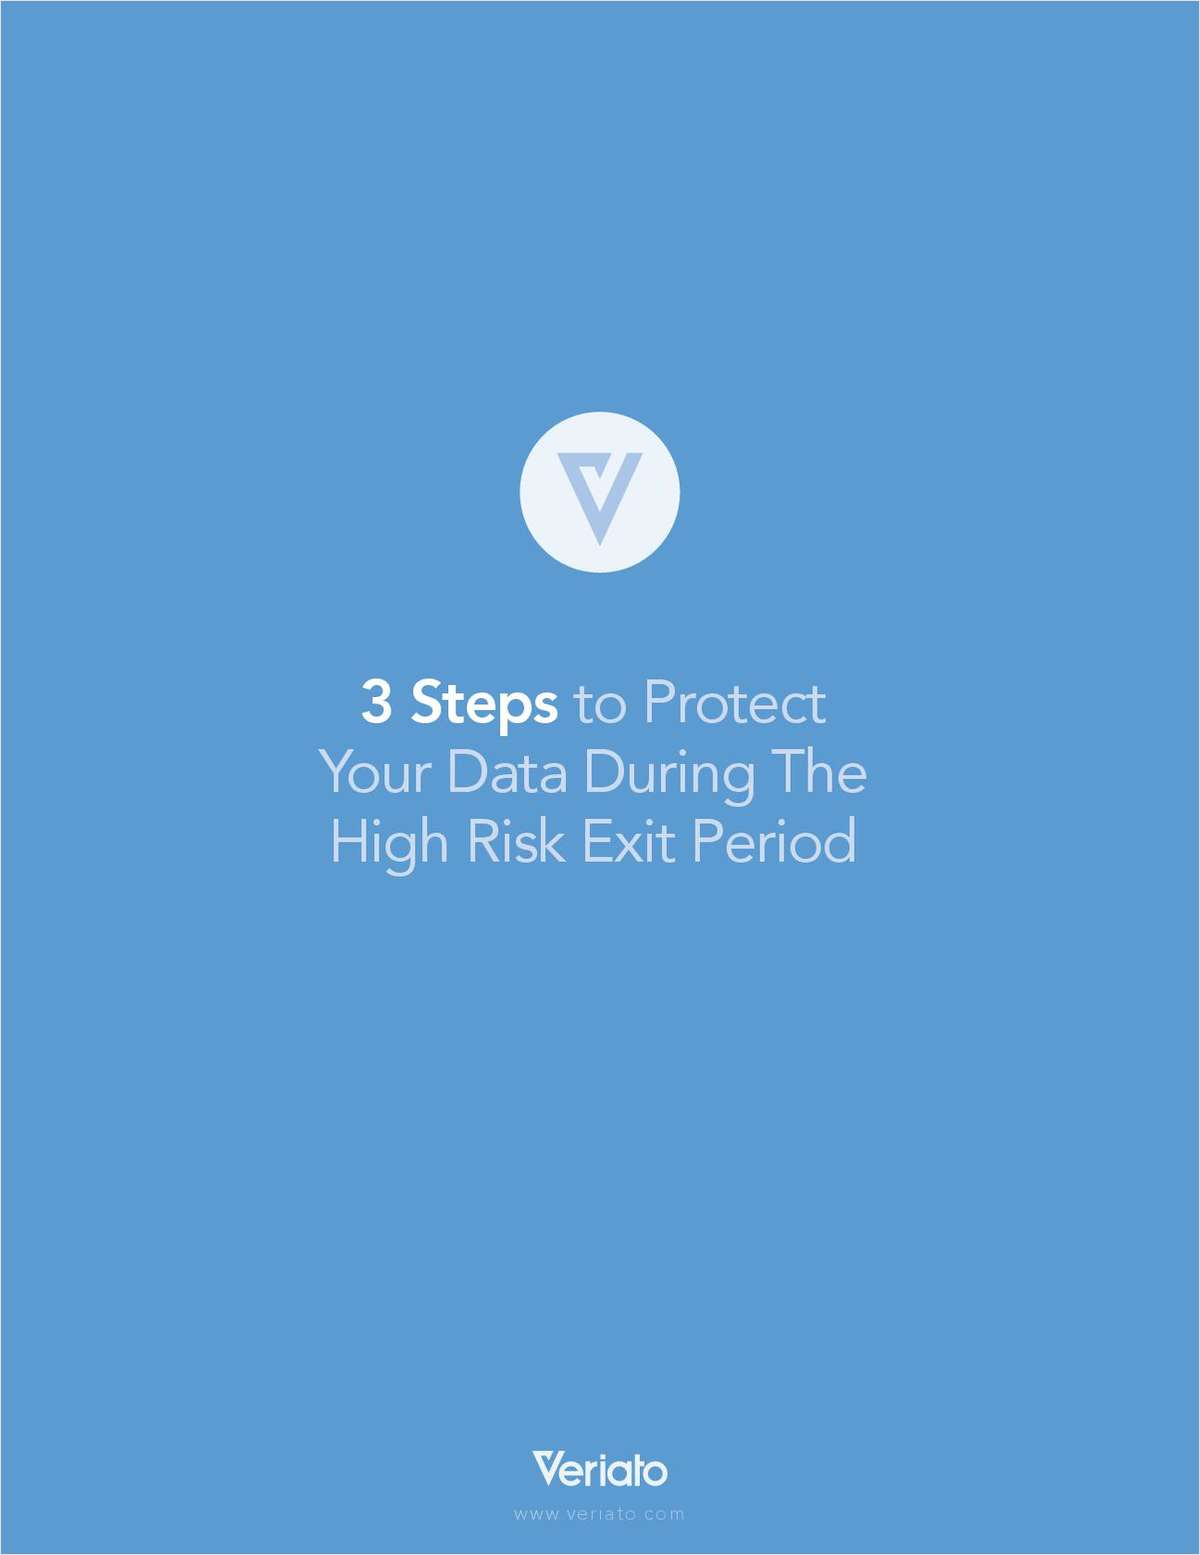 3 Steps to Protect Your Data During The High Risk Exit Period